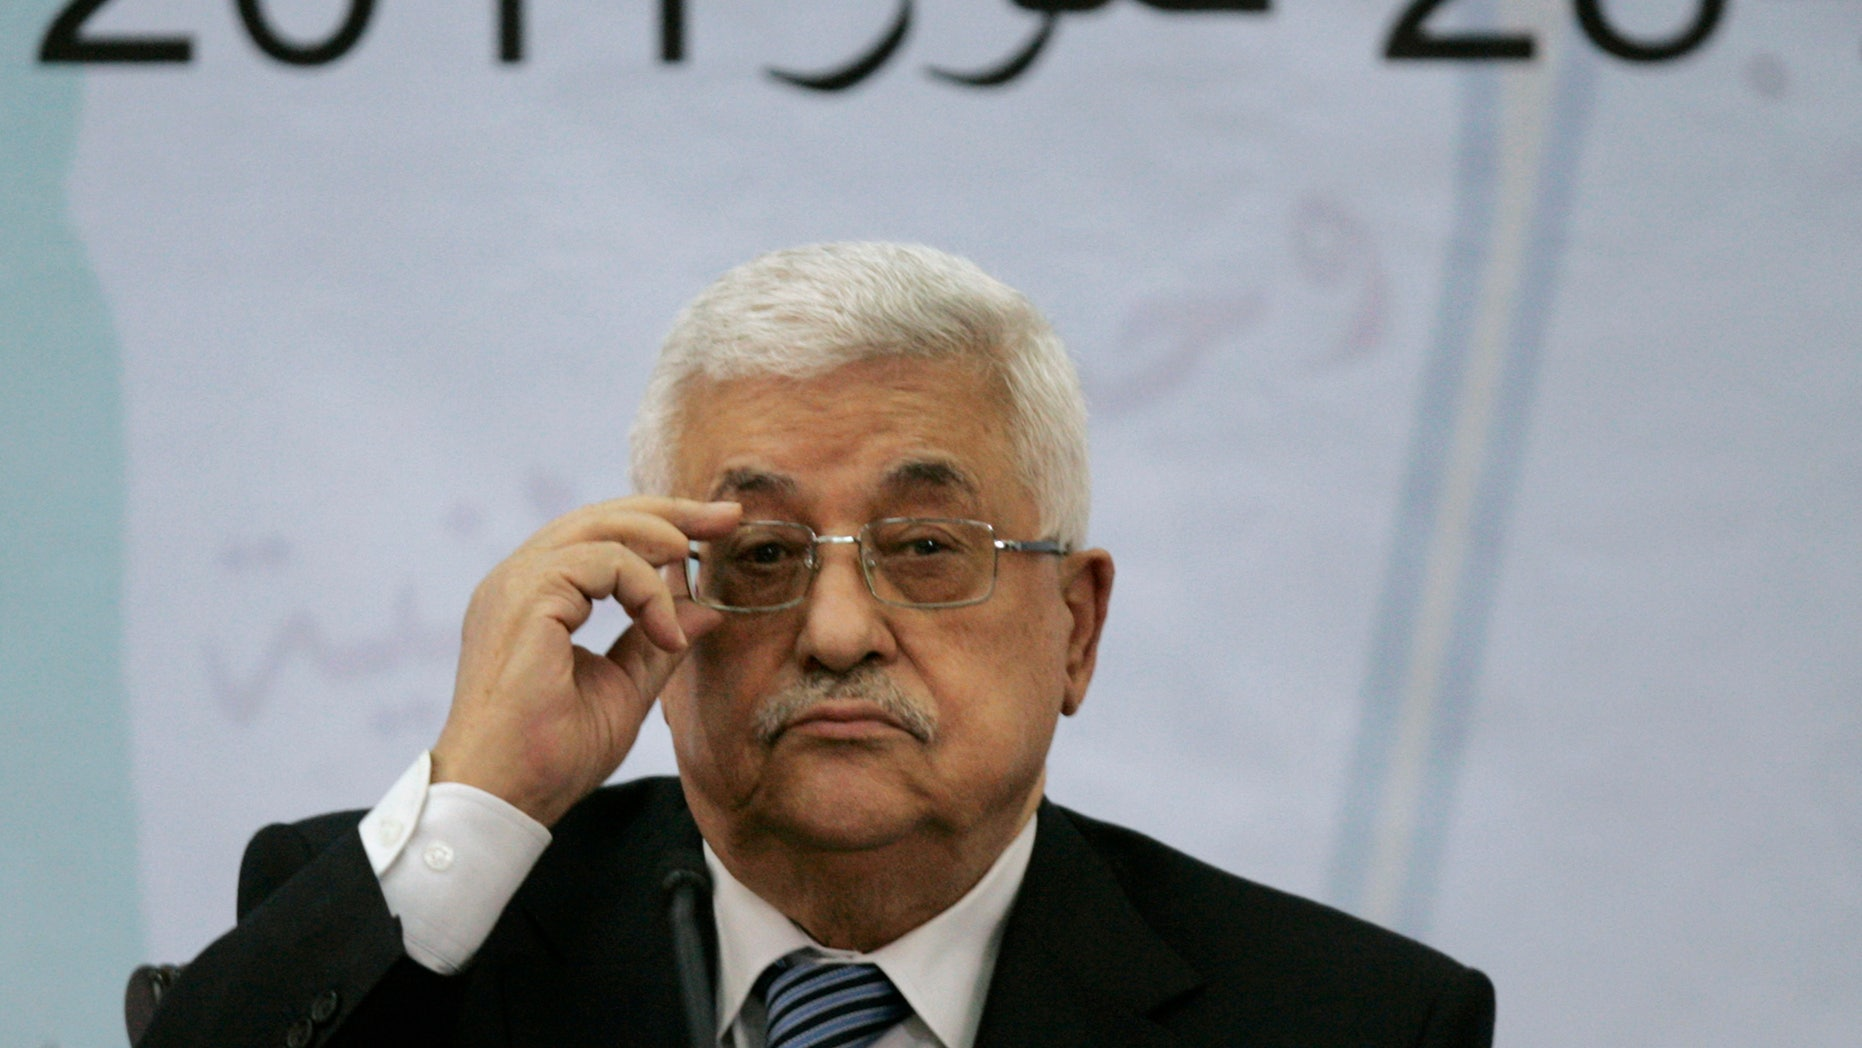 July 27: Palestinian President Mahmoud Abbas attends a meeting of the Central Committee of the Palestine Liberation Organization (PLO), in the West Bank city of Ramallah.